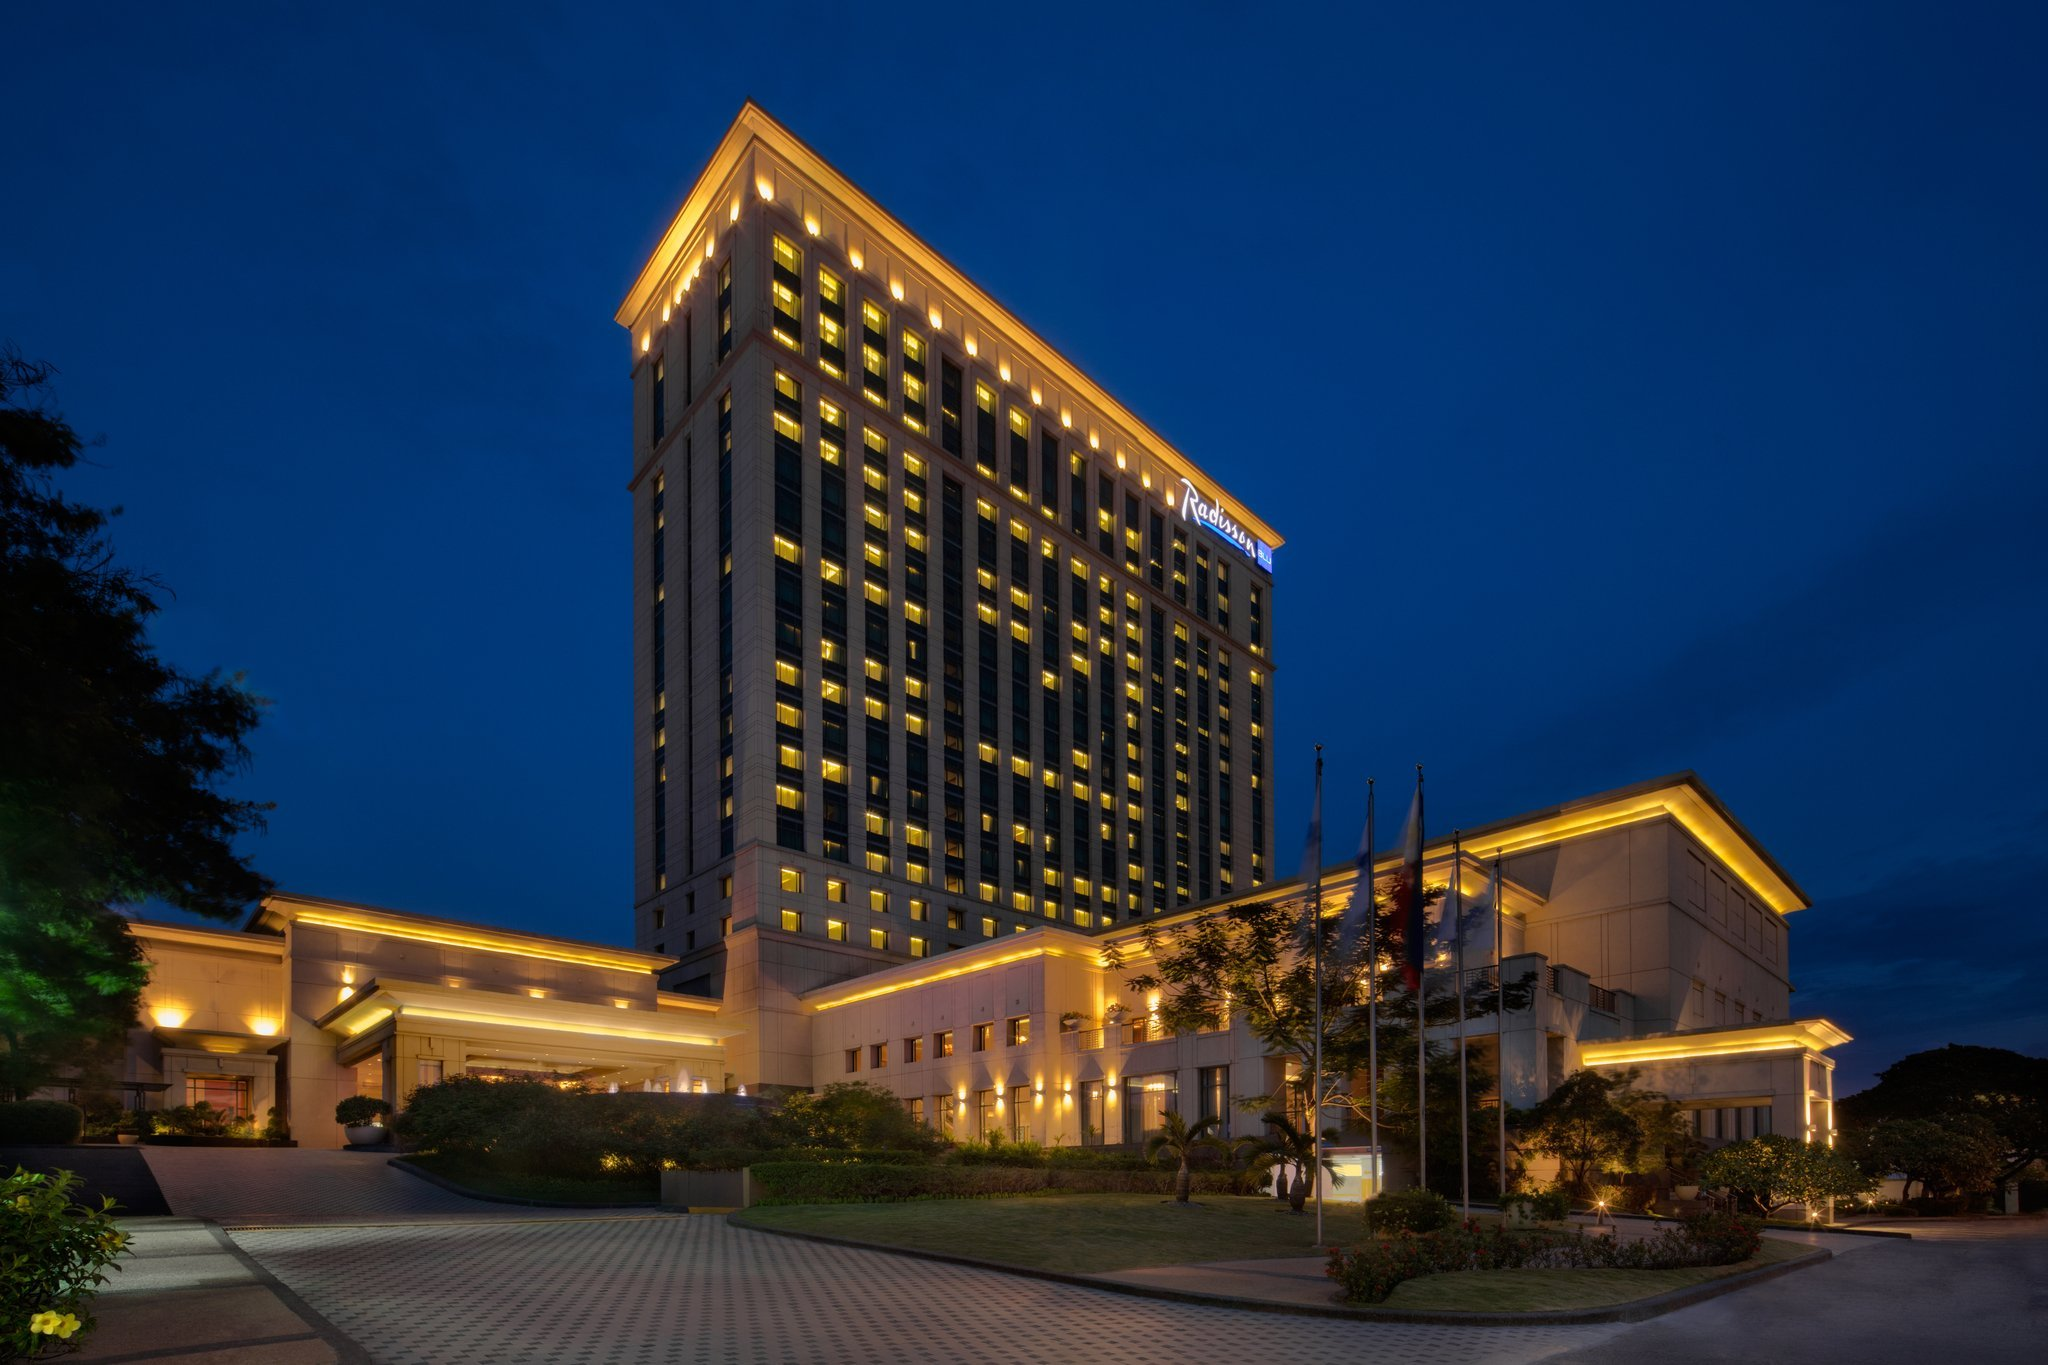 Radisson Blu Cebu